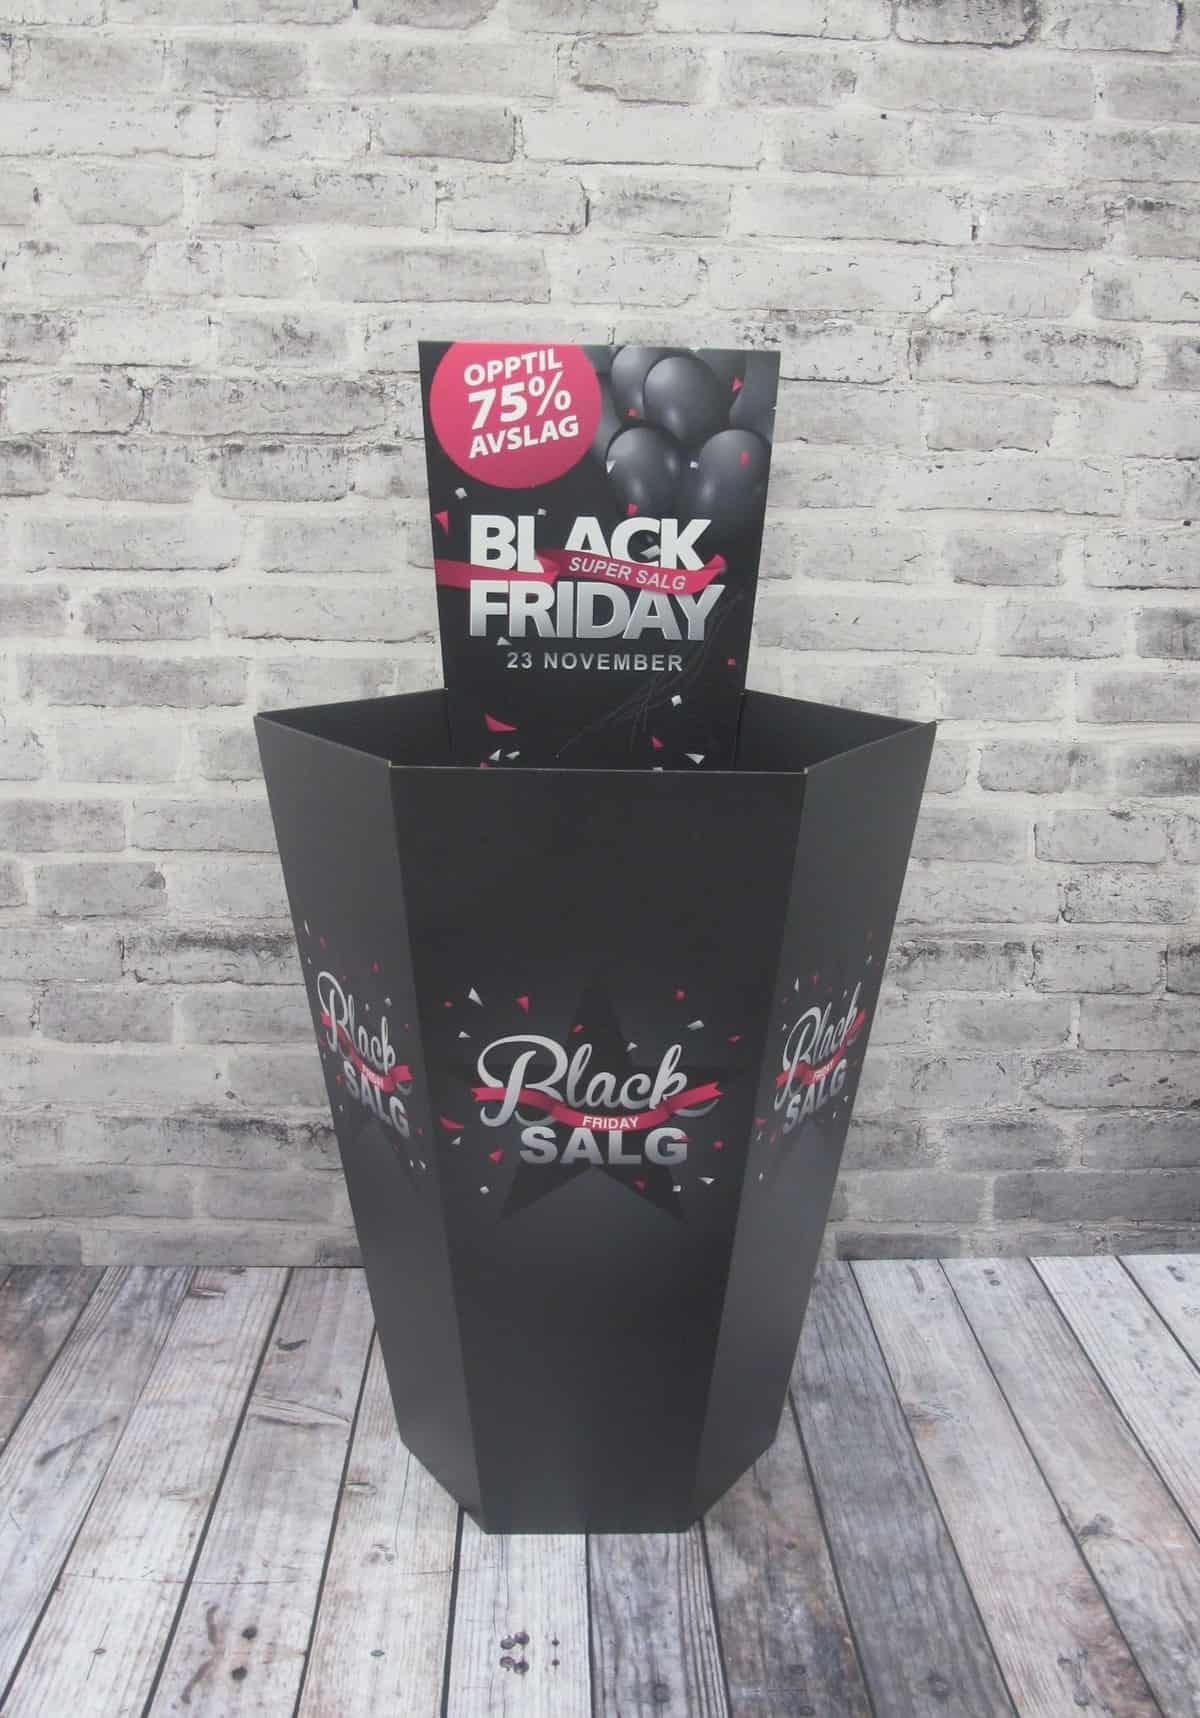 Display_Dumper_BlackFriday